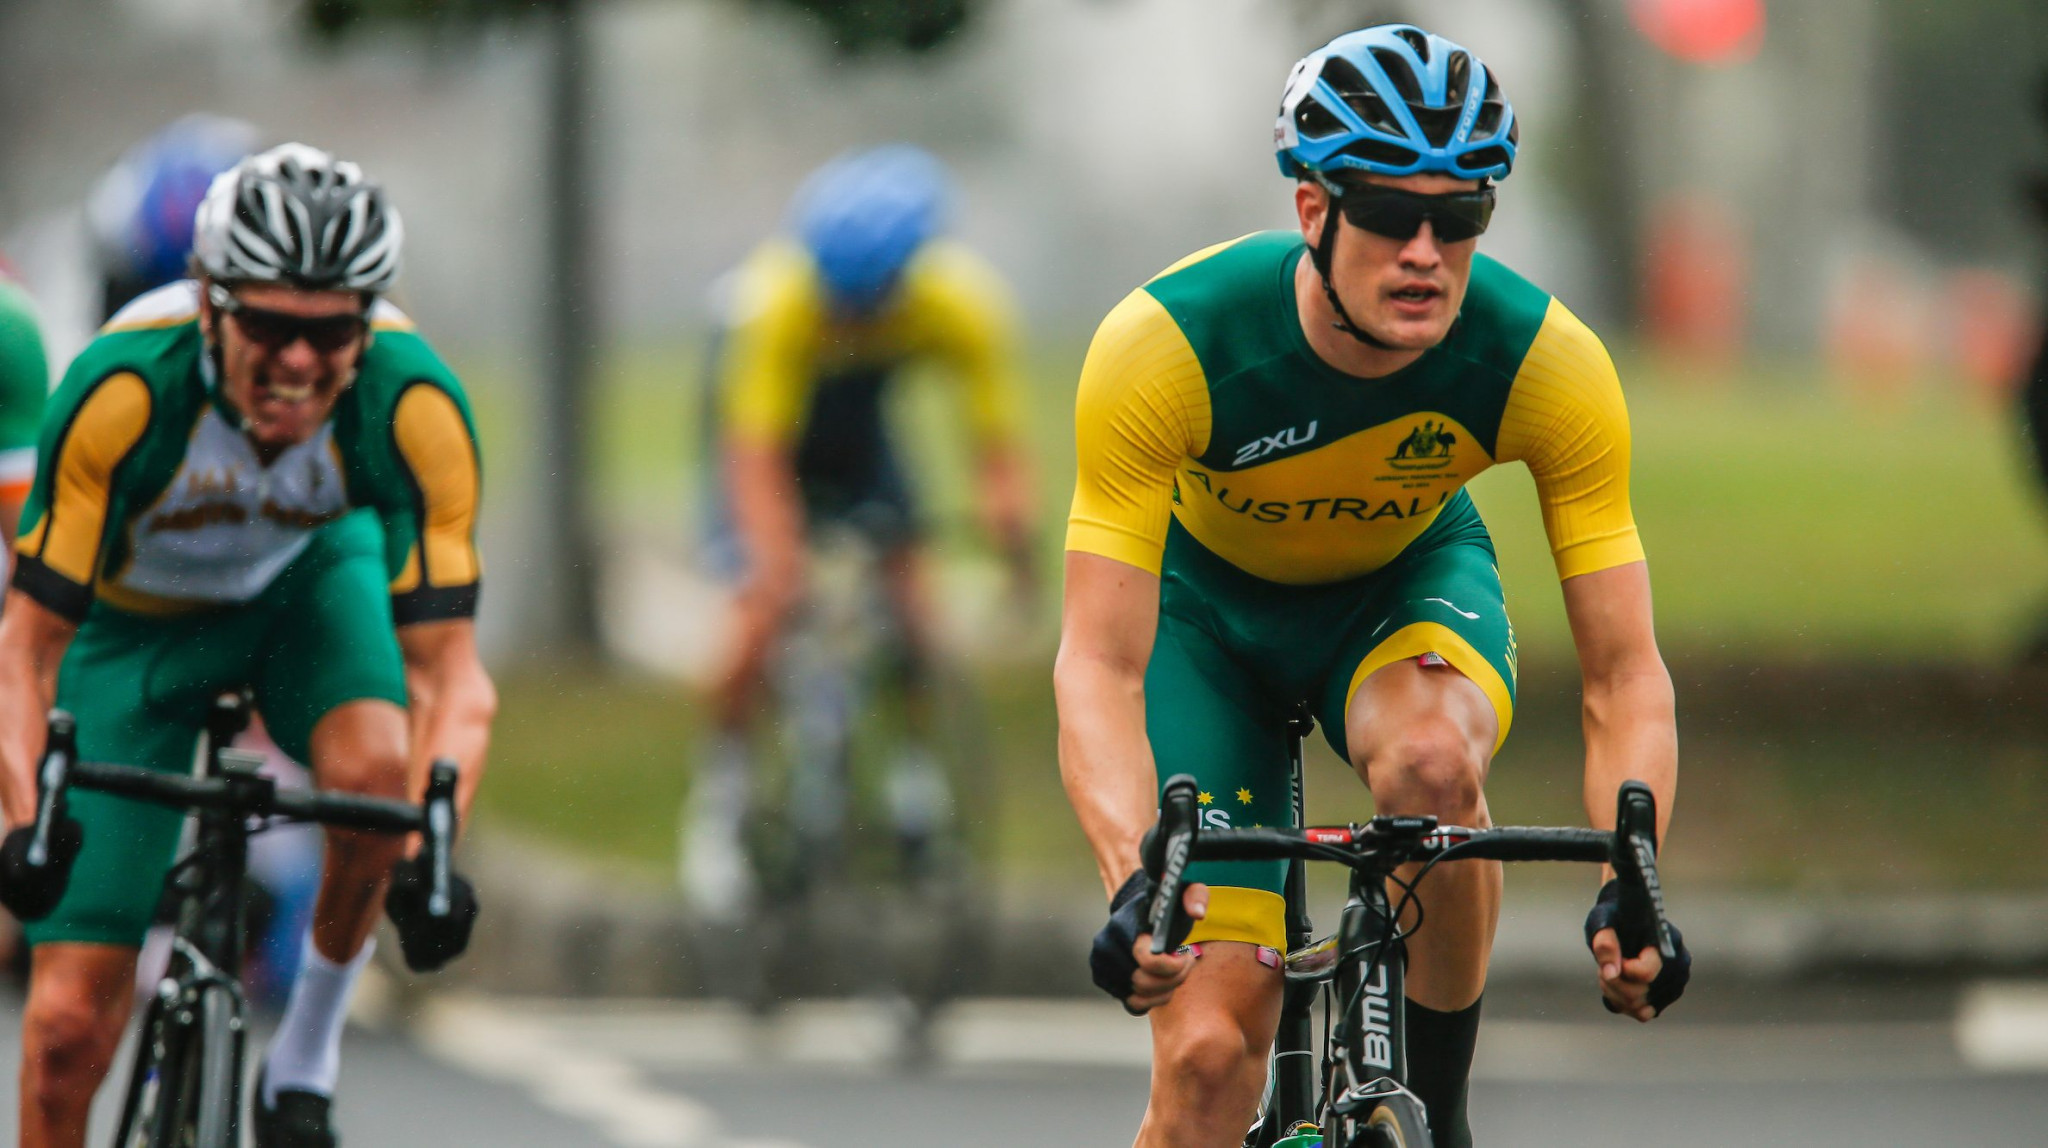 Australia's world-class Para-cyclists crowned national champions in Ballarat